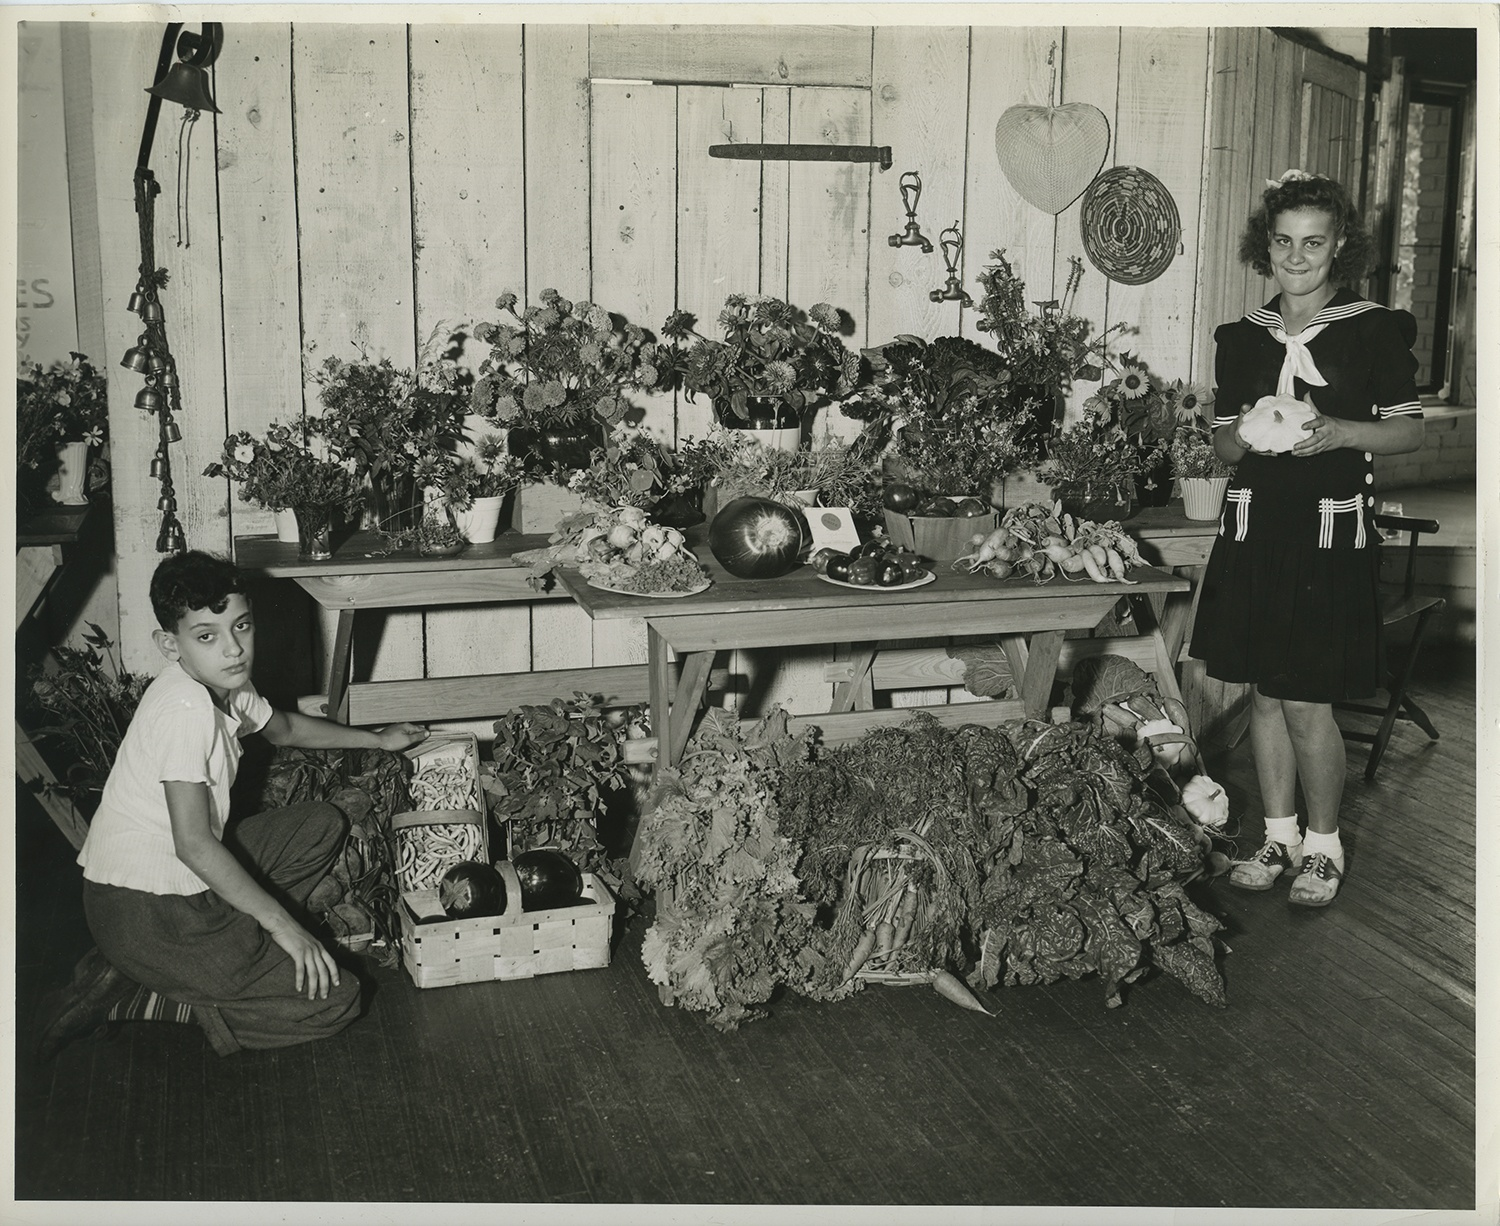 Pittsburgh Public School students pose with the output from one of their gardens, possibly a victory garden, 1940s.